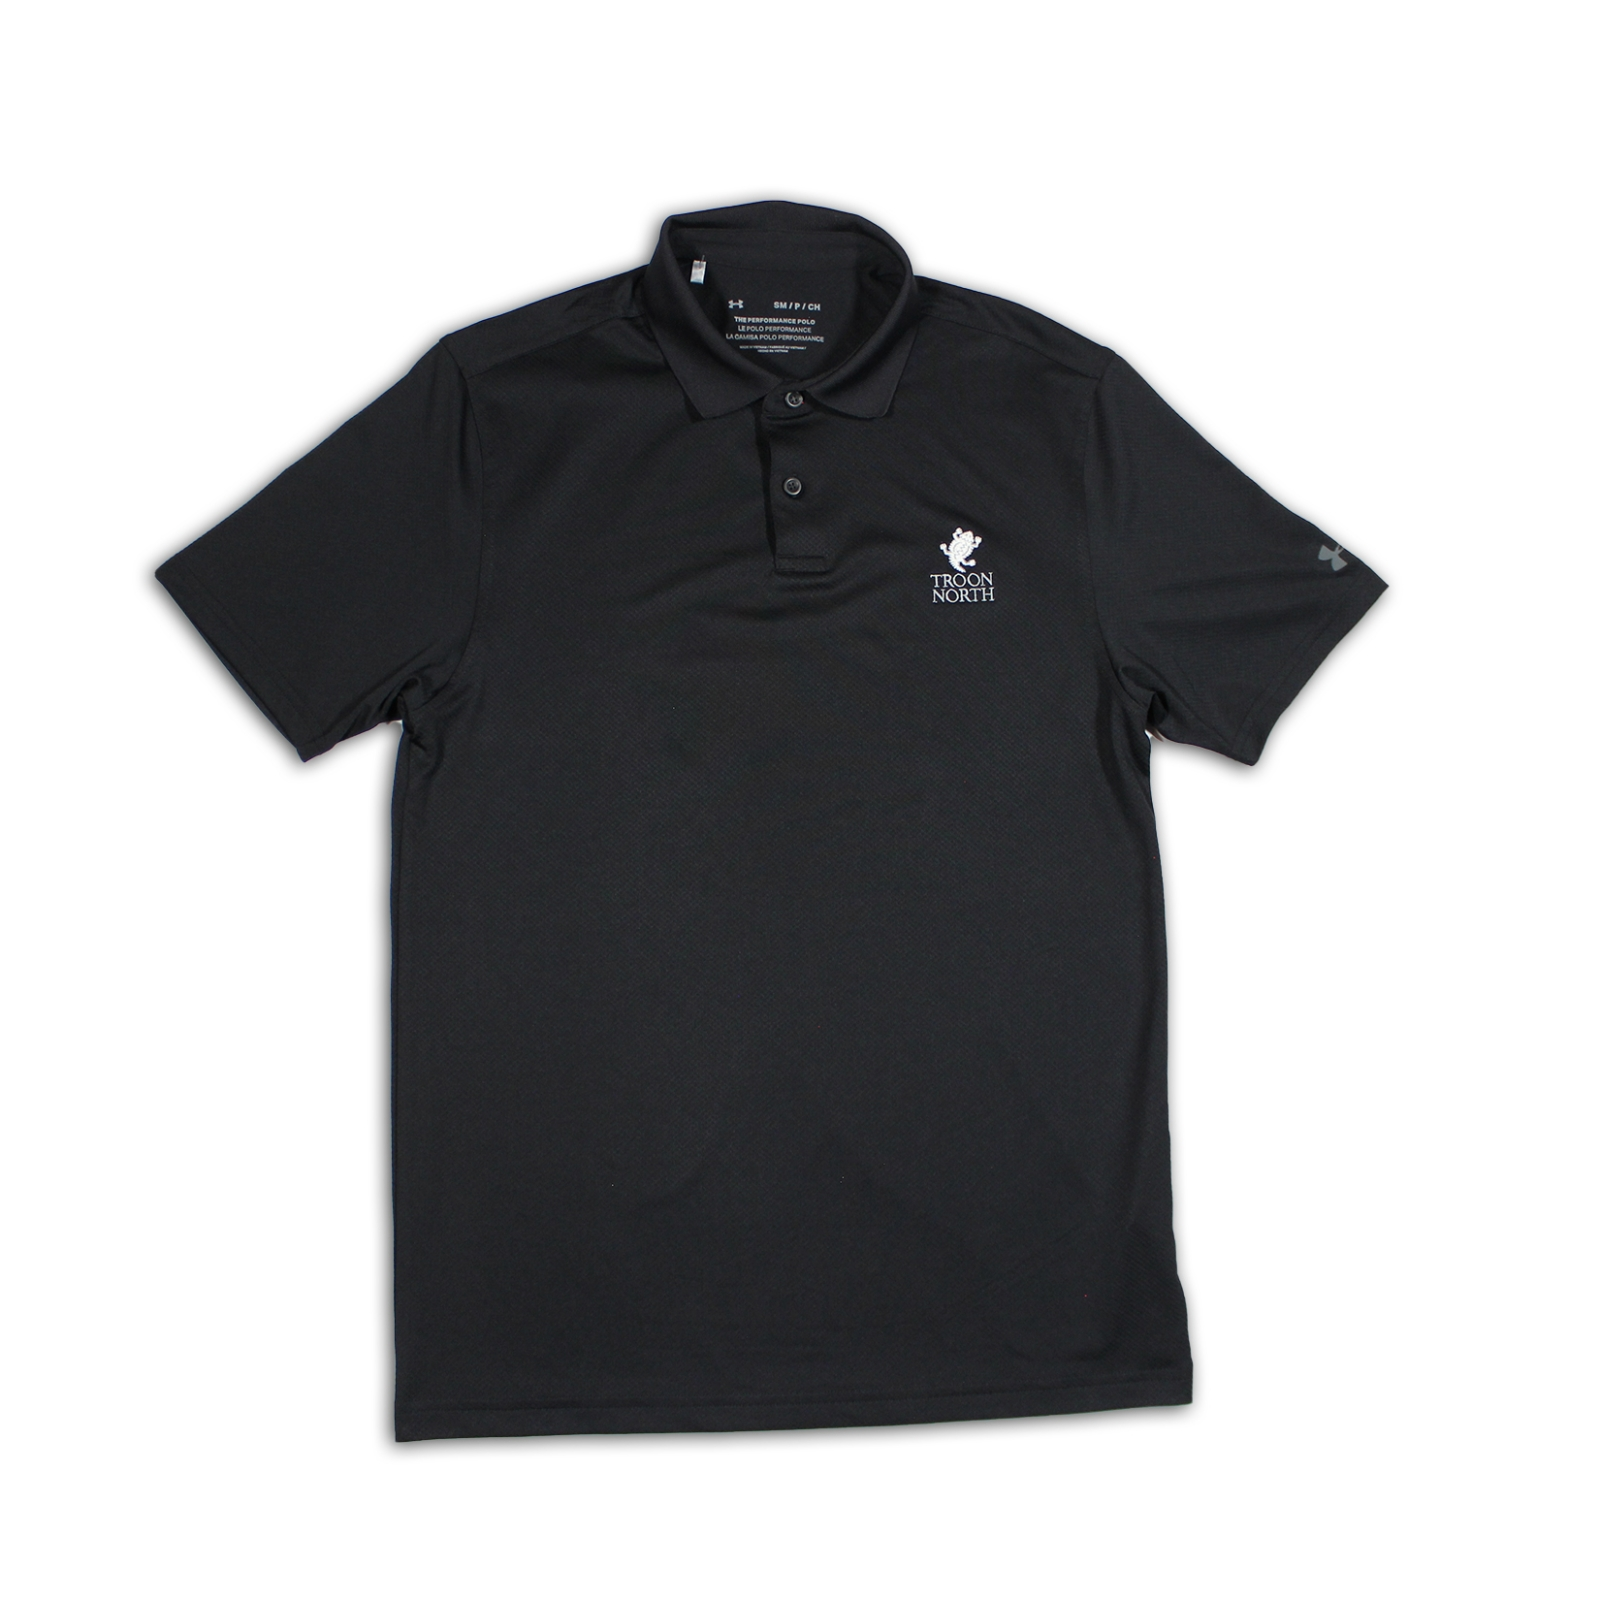 Under Armour Solid Black Polo